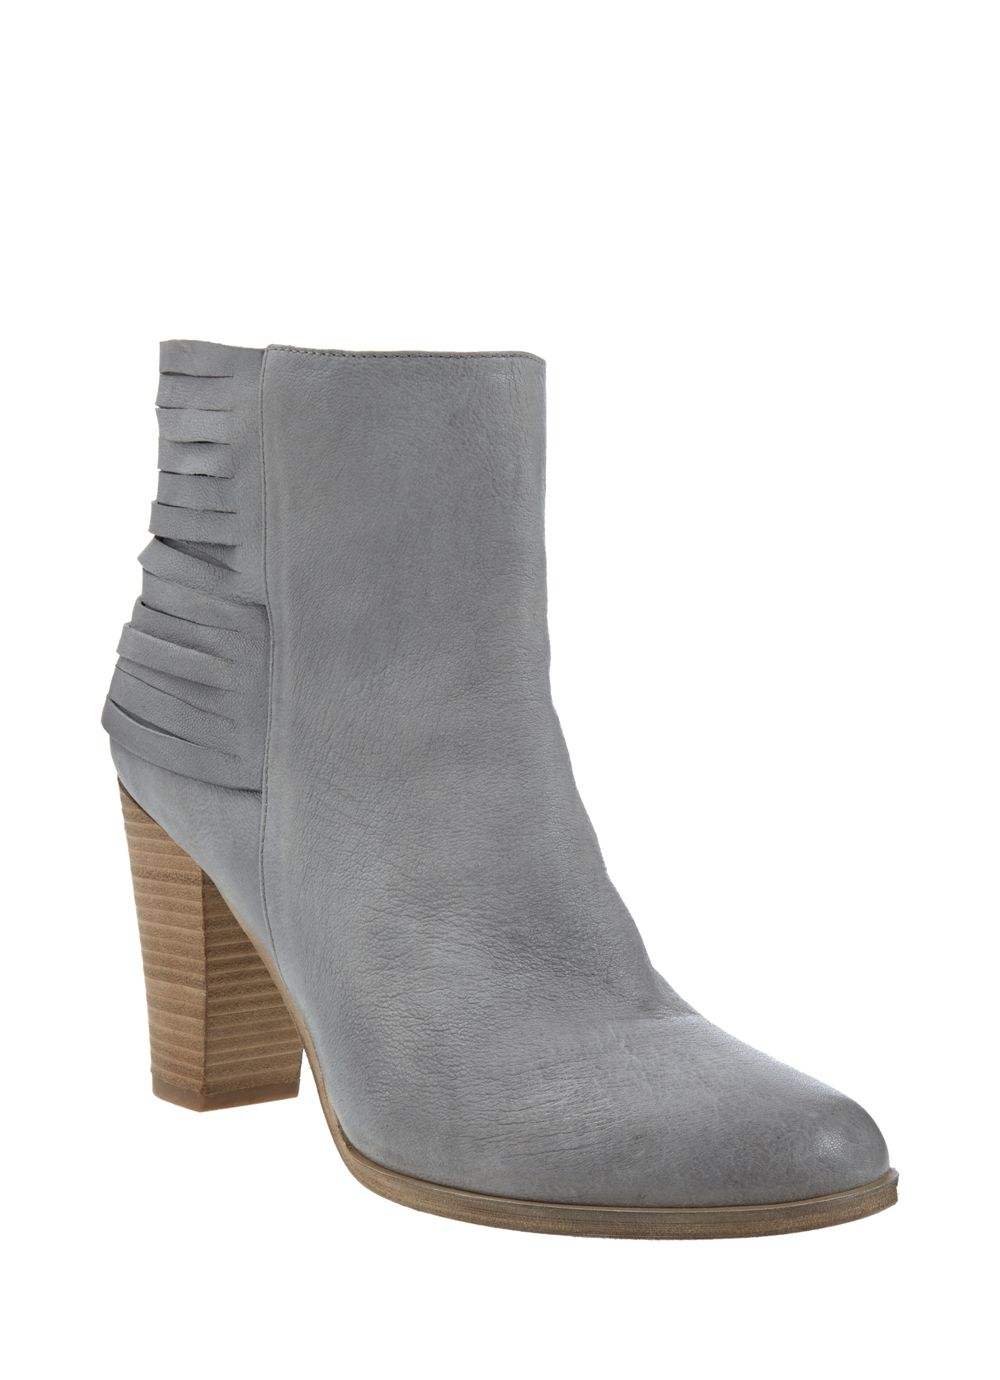 Grey emily mid boot